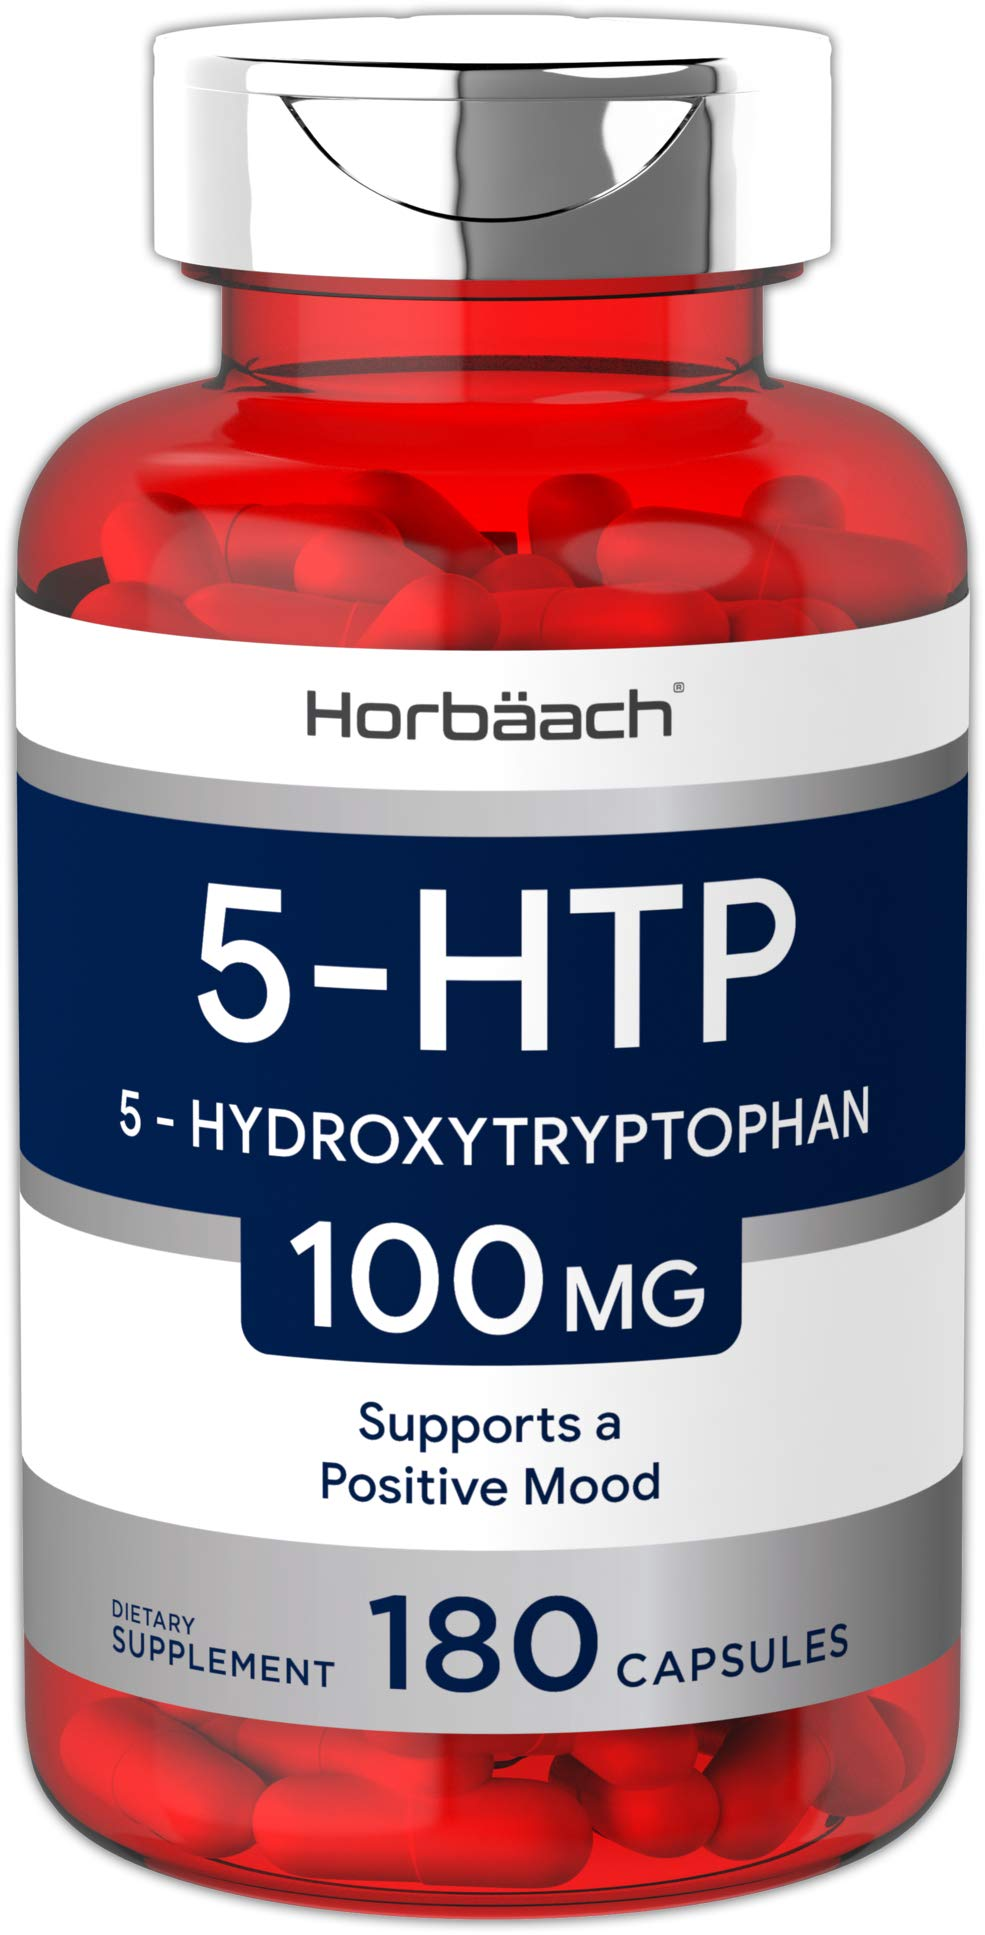 Horbaach 5HTP 100mg 6-Month Supply | 180 Capsules | Non-GMO, Gluten Free | 5 HTP | 5 Hydroxytryptophan Extra Strength Supplement